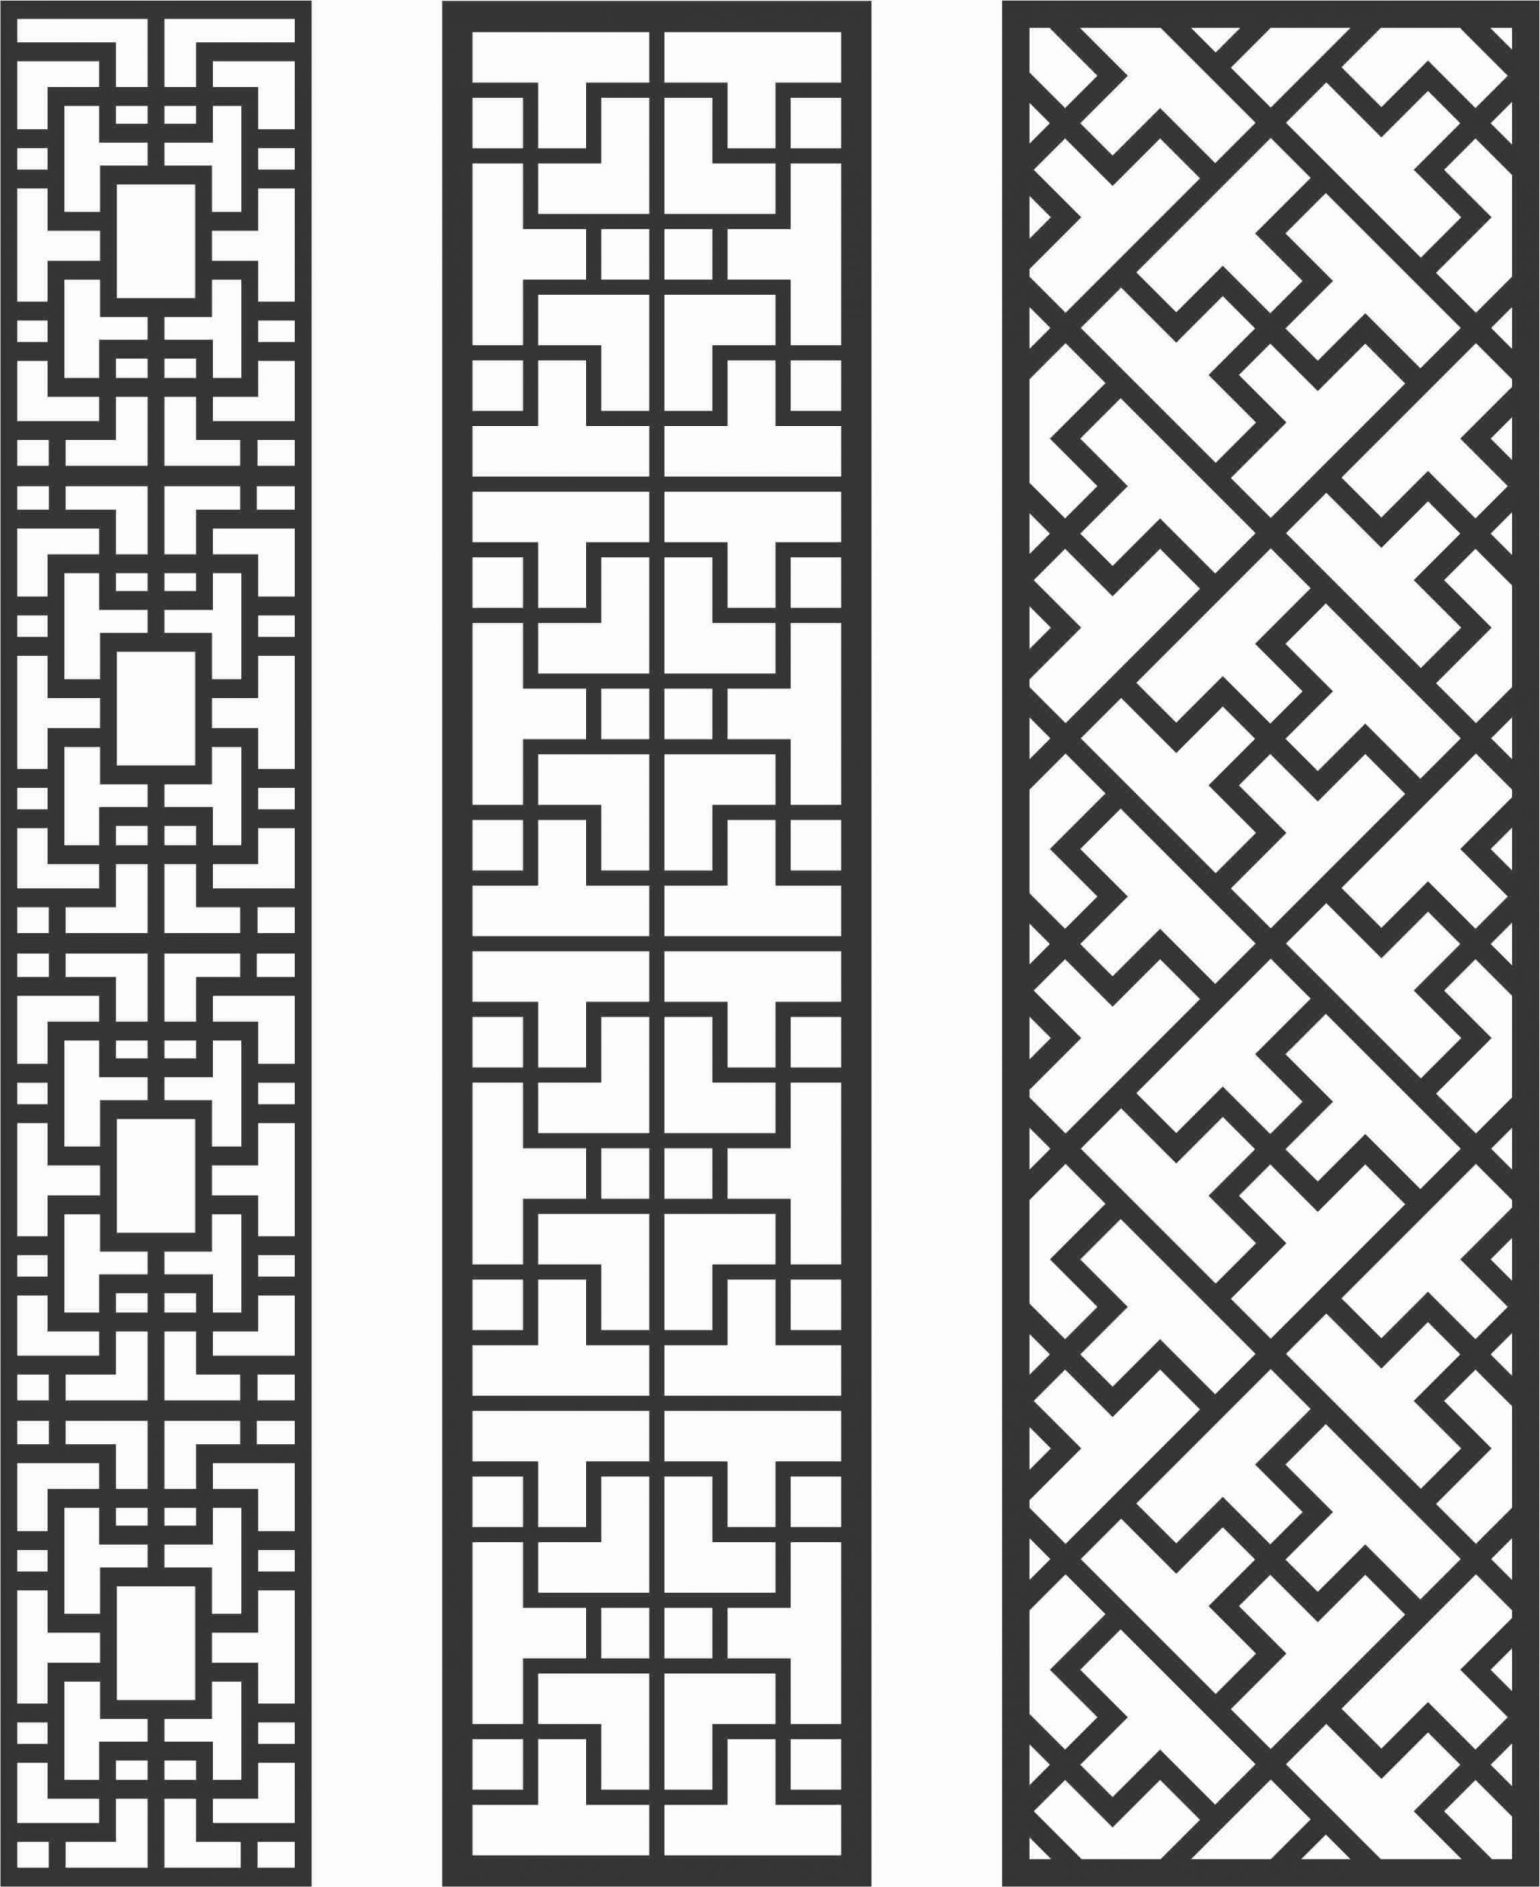 Decorative Screen Patterns For Laser Cutting 82 Free DXF File